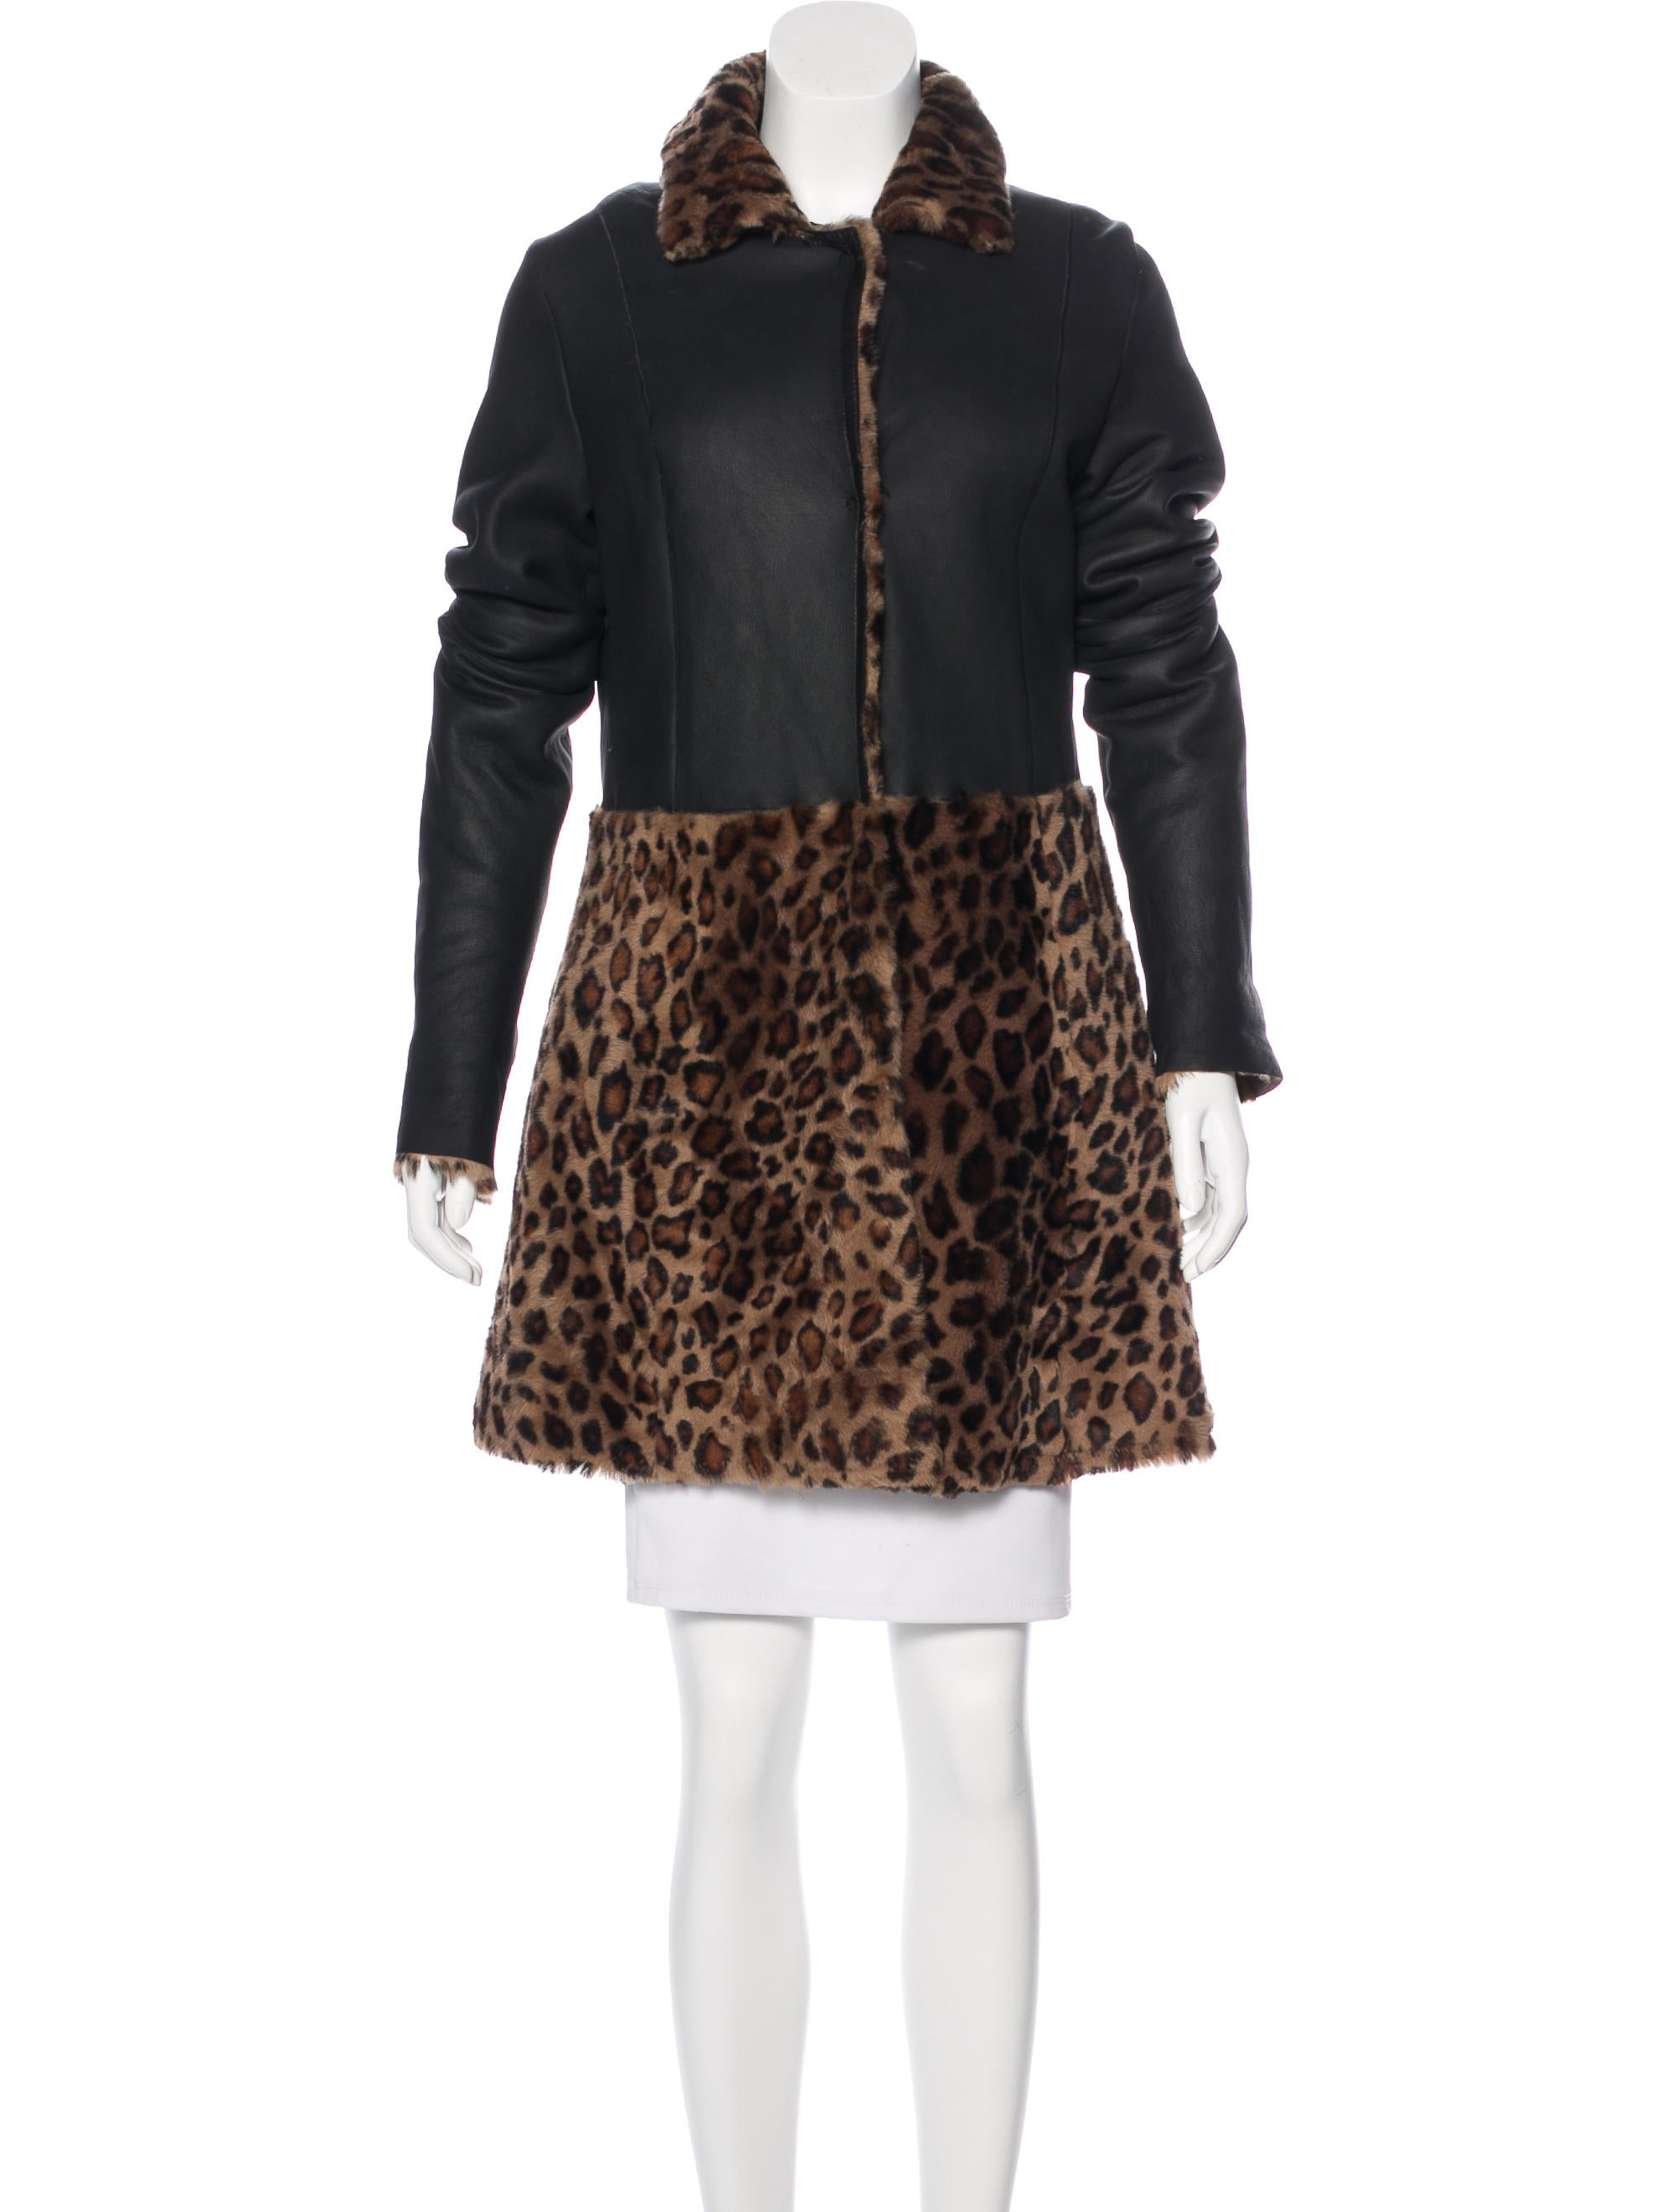 Moschino cheap and chic leopard print shearling coat Inexpensive chic